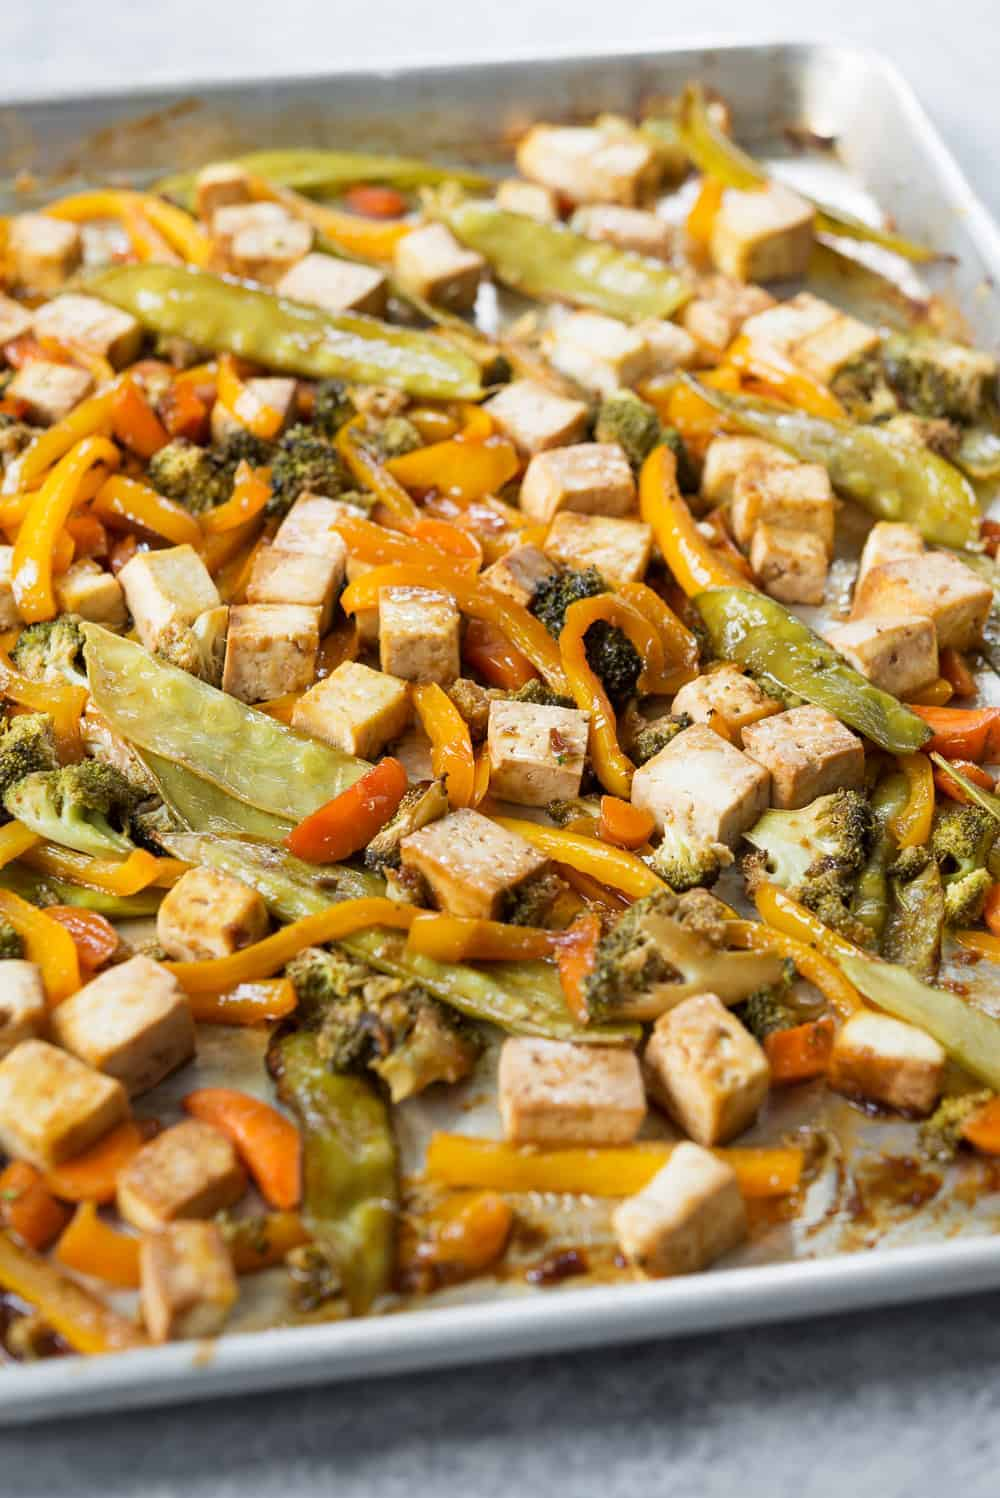 vegan sheet pan stir fry with tofu and vegetables